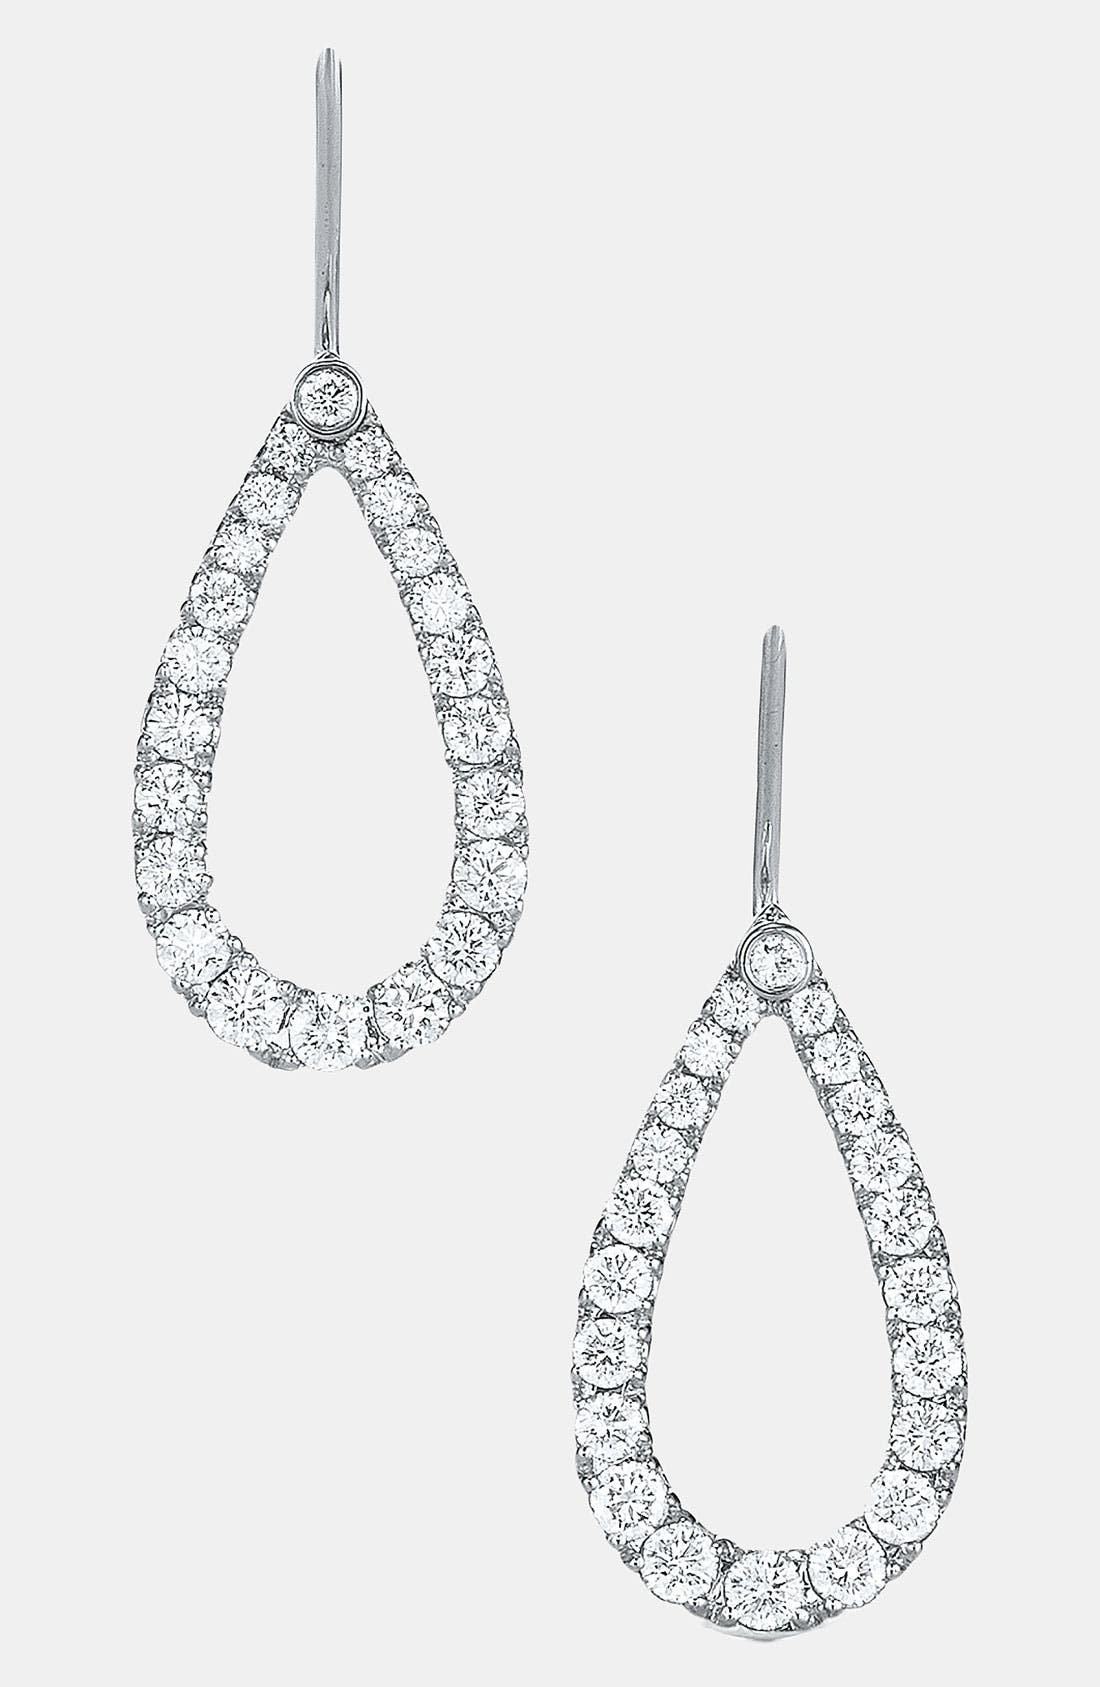 Alternate Image 1 Selected - Kwiat 'Contorno' Teardrop Diamond Earrings